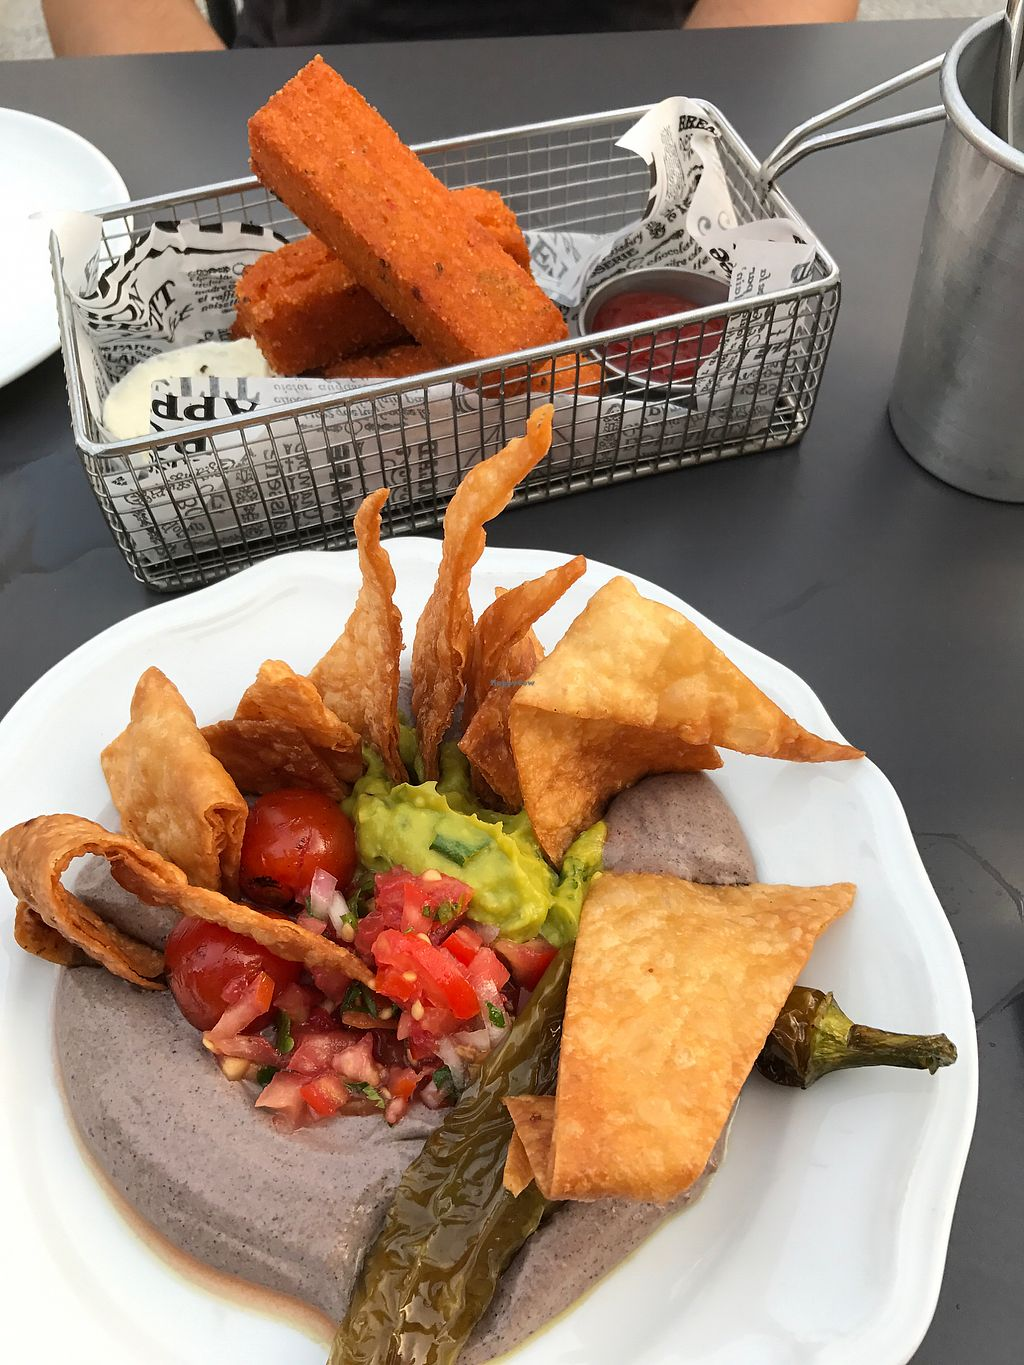 """Photo of Four One Six  by <a href=""""/members/profile/Brok%20O.%20Lee"""">Brok O. Lee</a> <br/>polenta fries and black bean hummus <br/> July 21, 2017  - <a href='/contact/abuse/image/84392/282971'>Report</a>"""